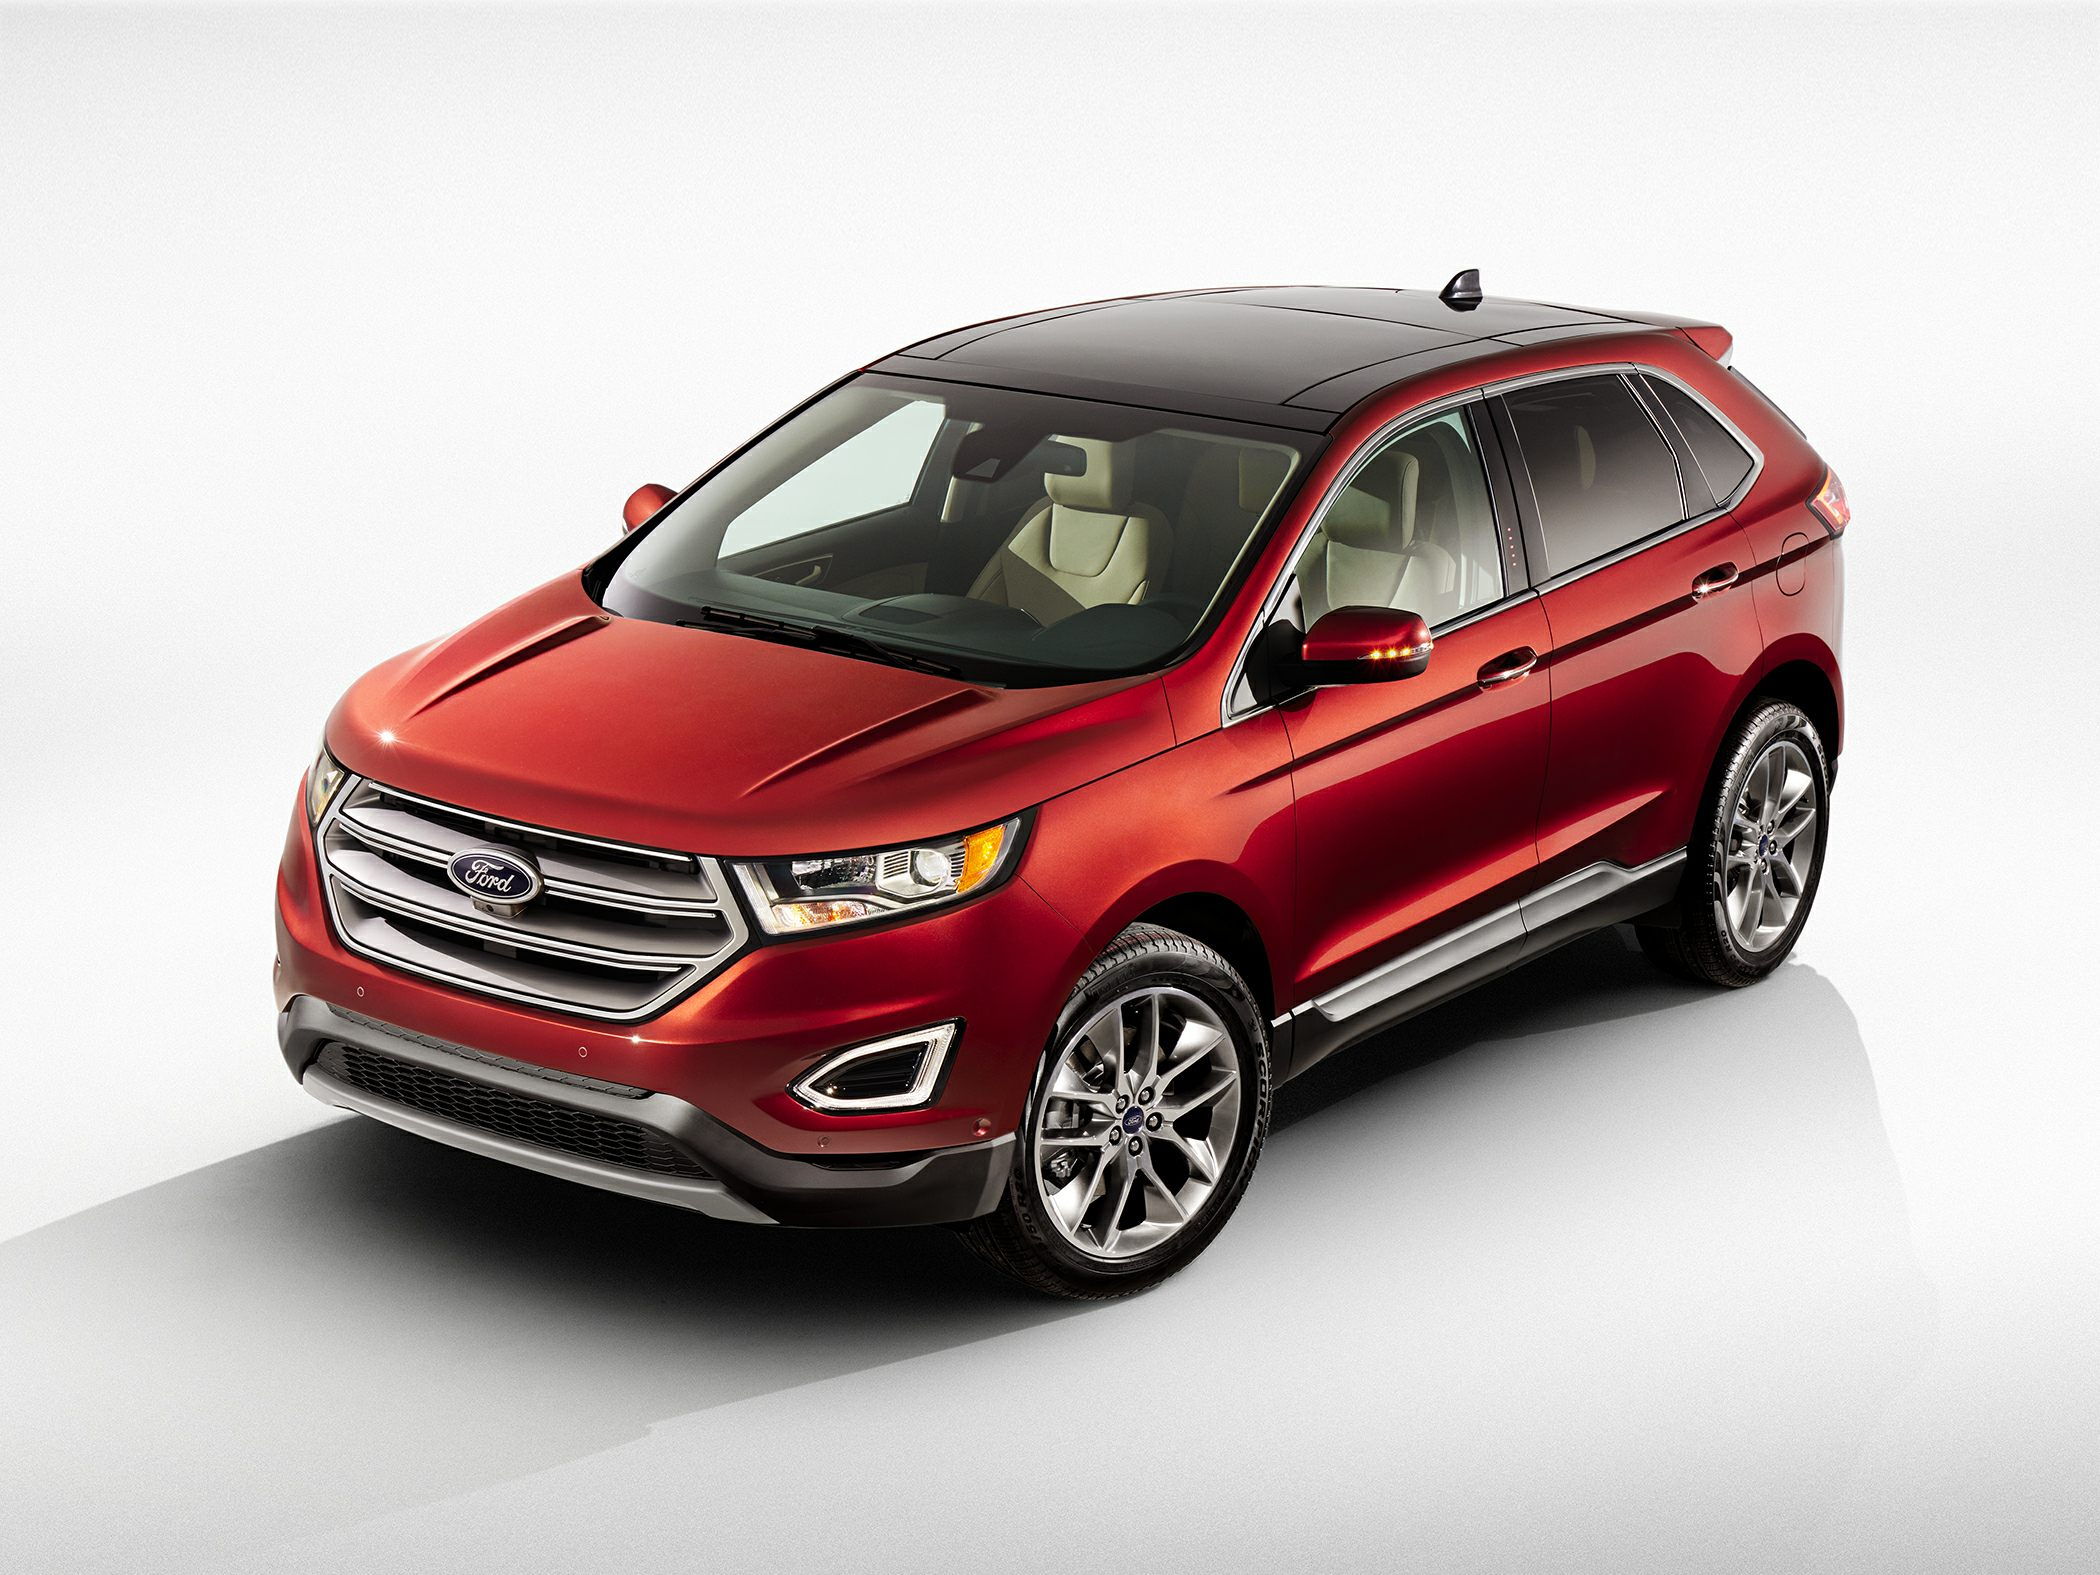 Now Built On The Same Platform As The Highly Regarded Fusion Sedan The New Edge Features More Contemporary Styling Increased Interior Room